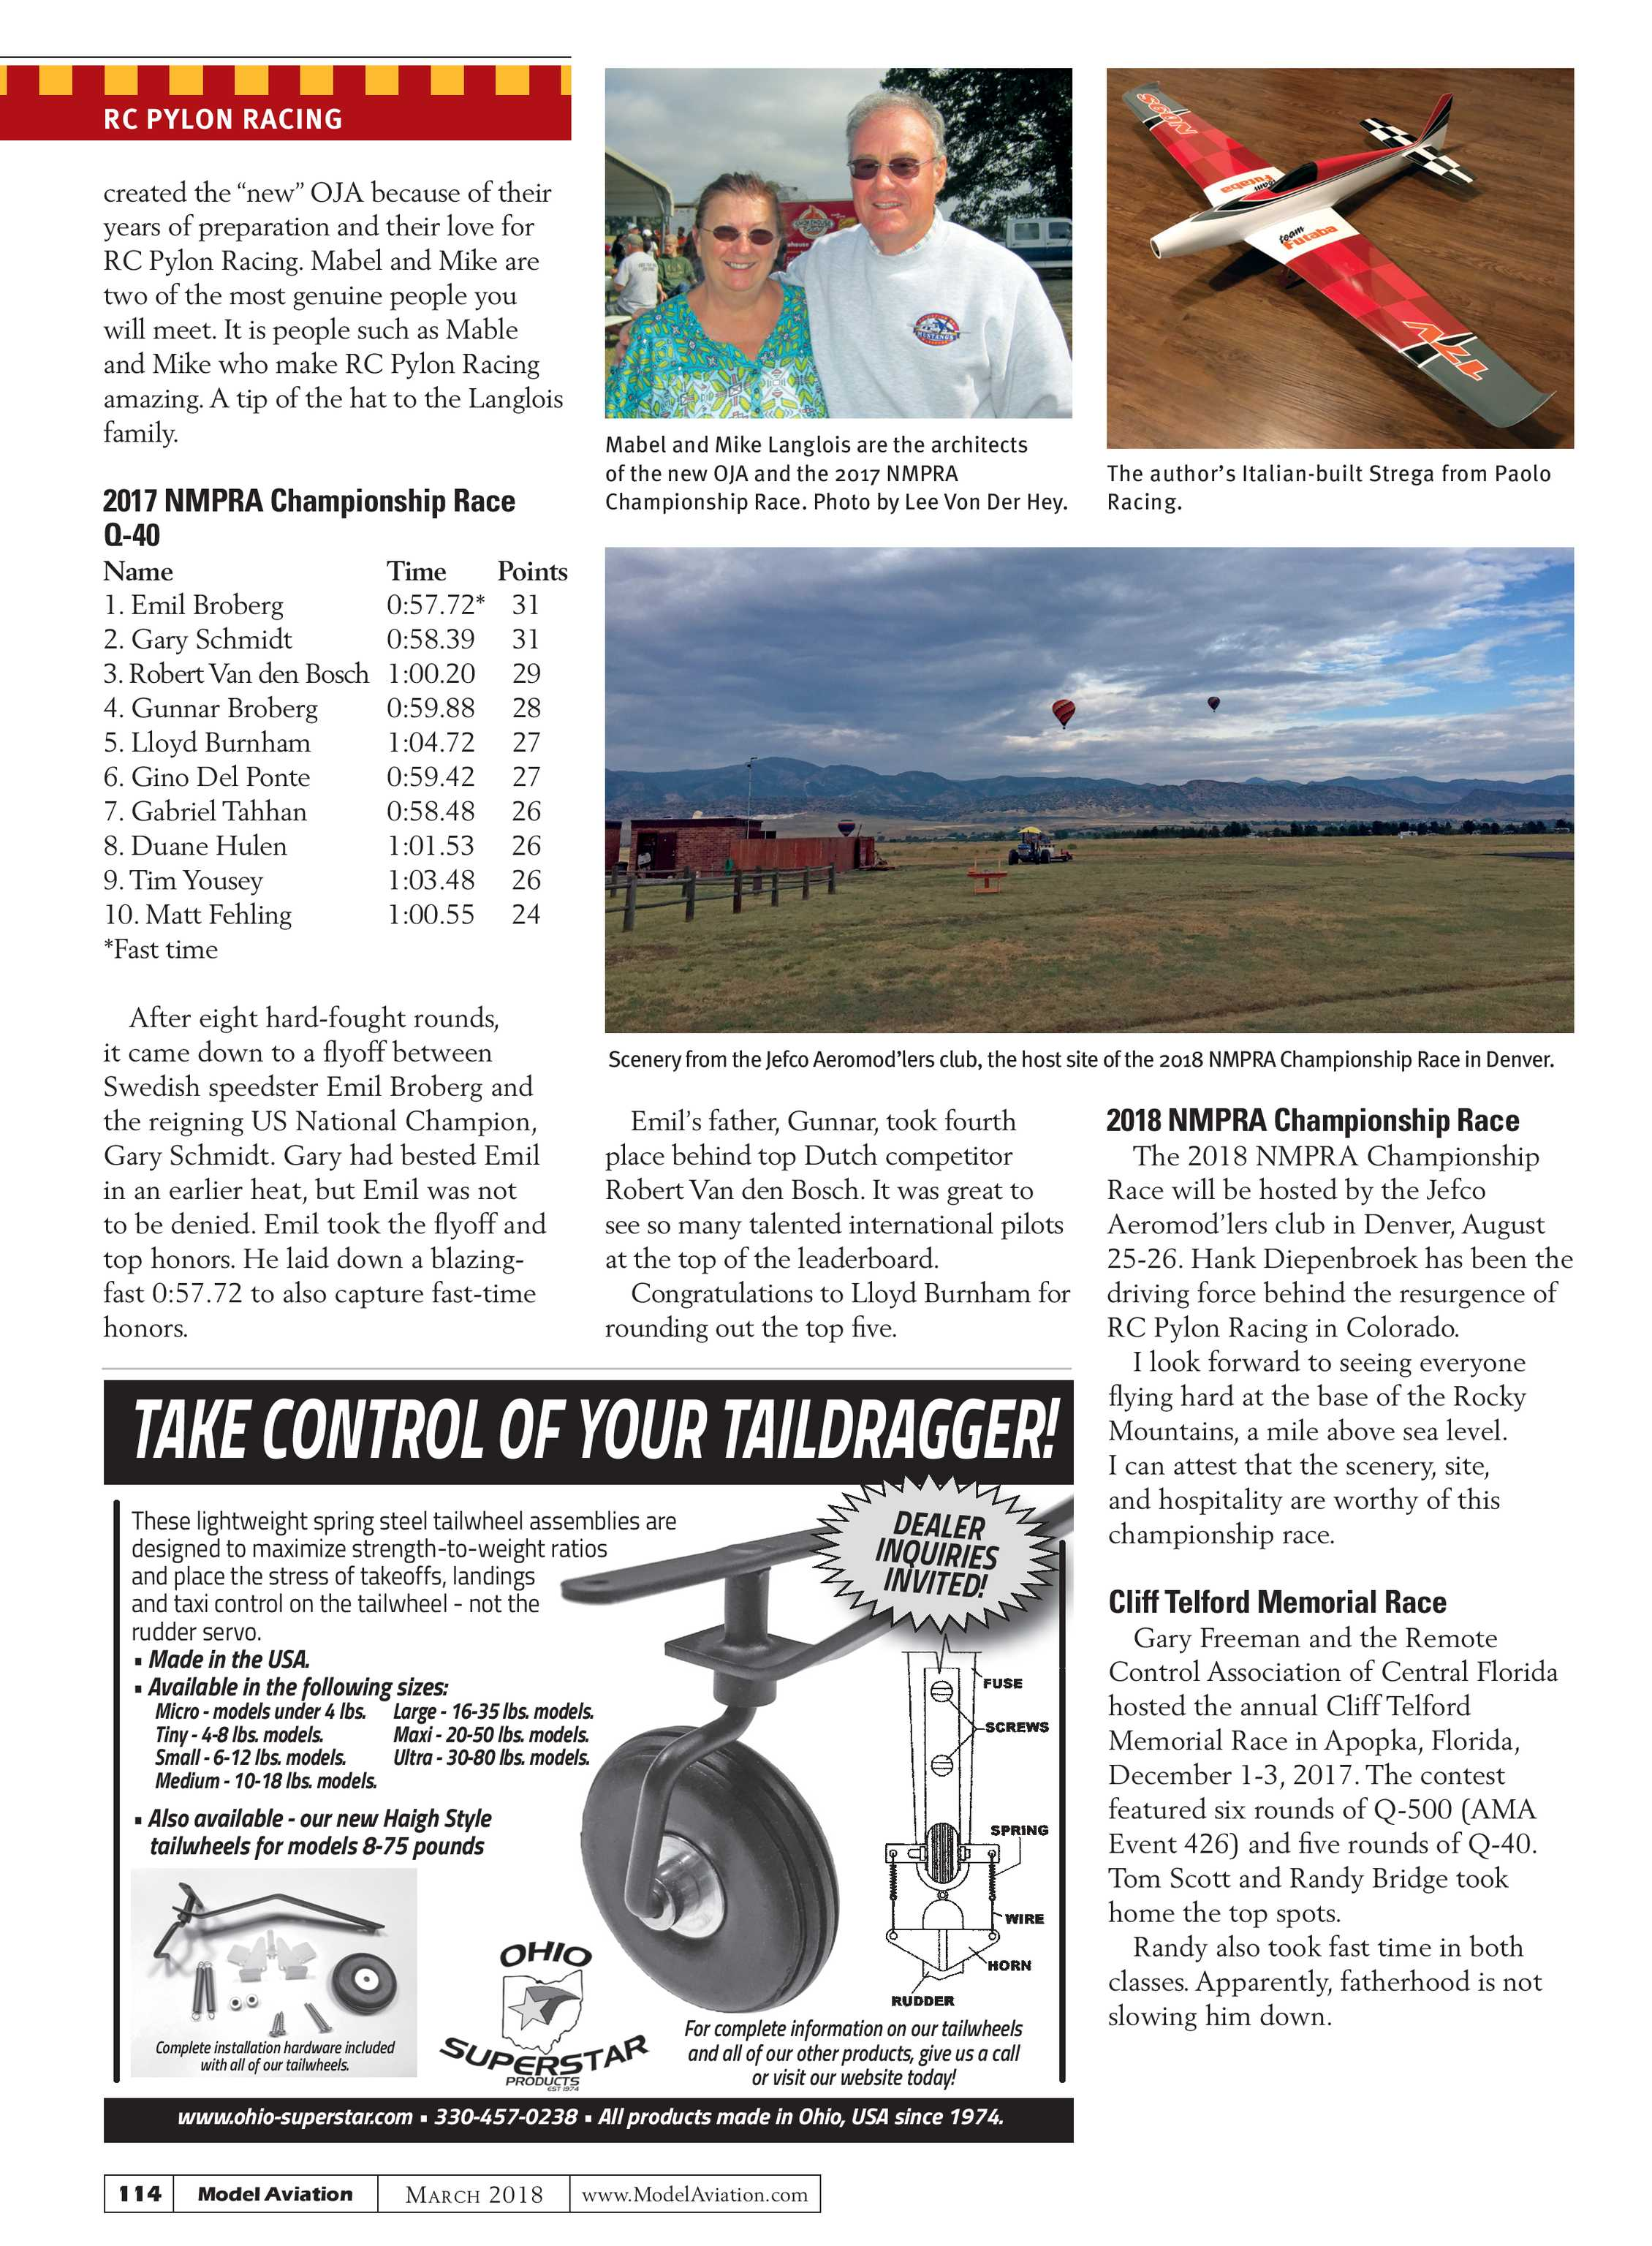 Model Aviation - March 2018 - page 113